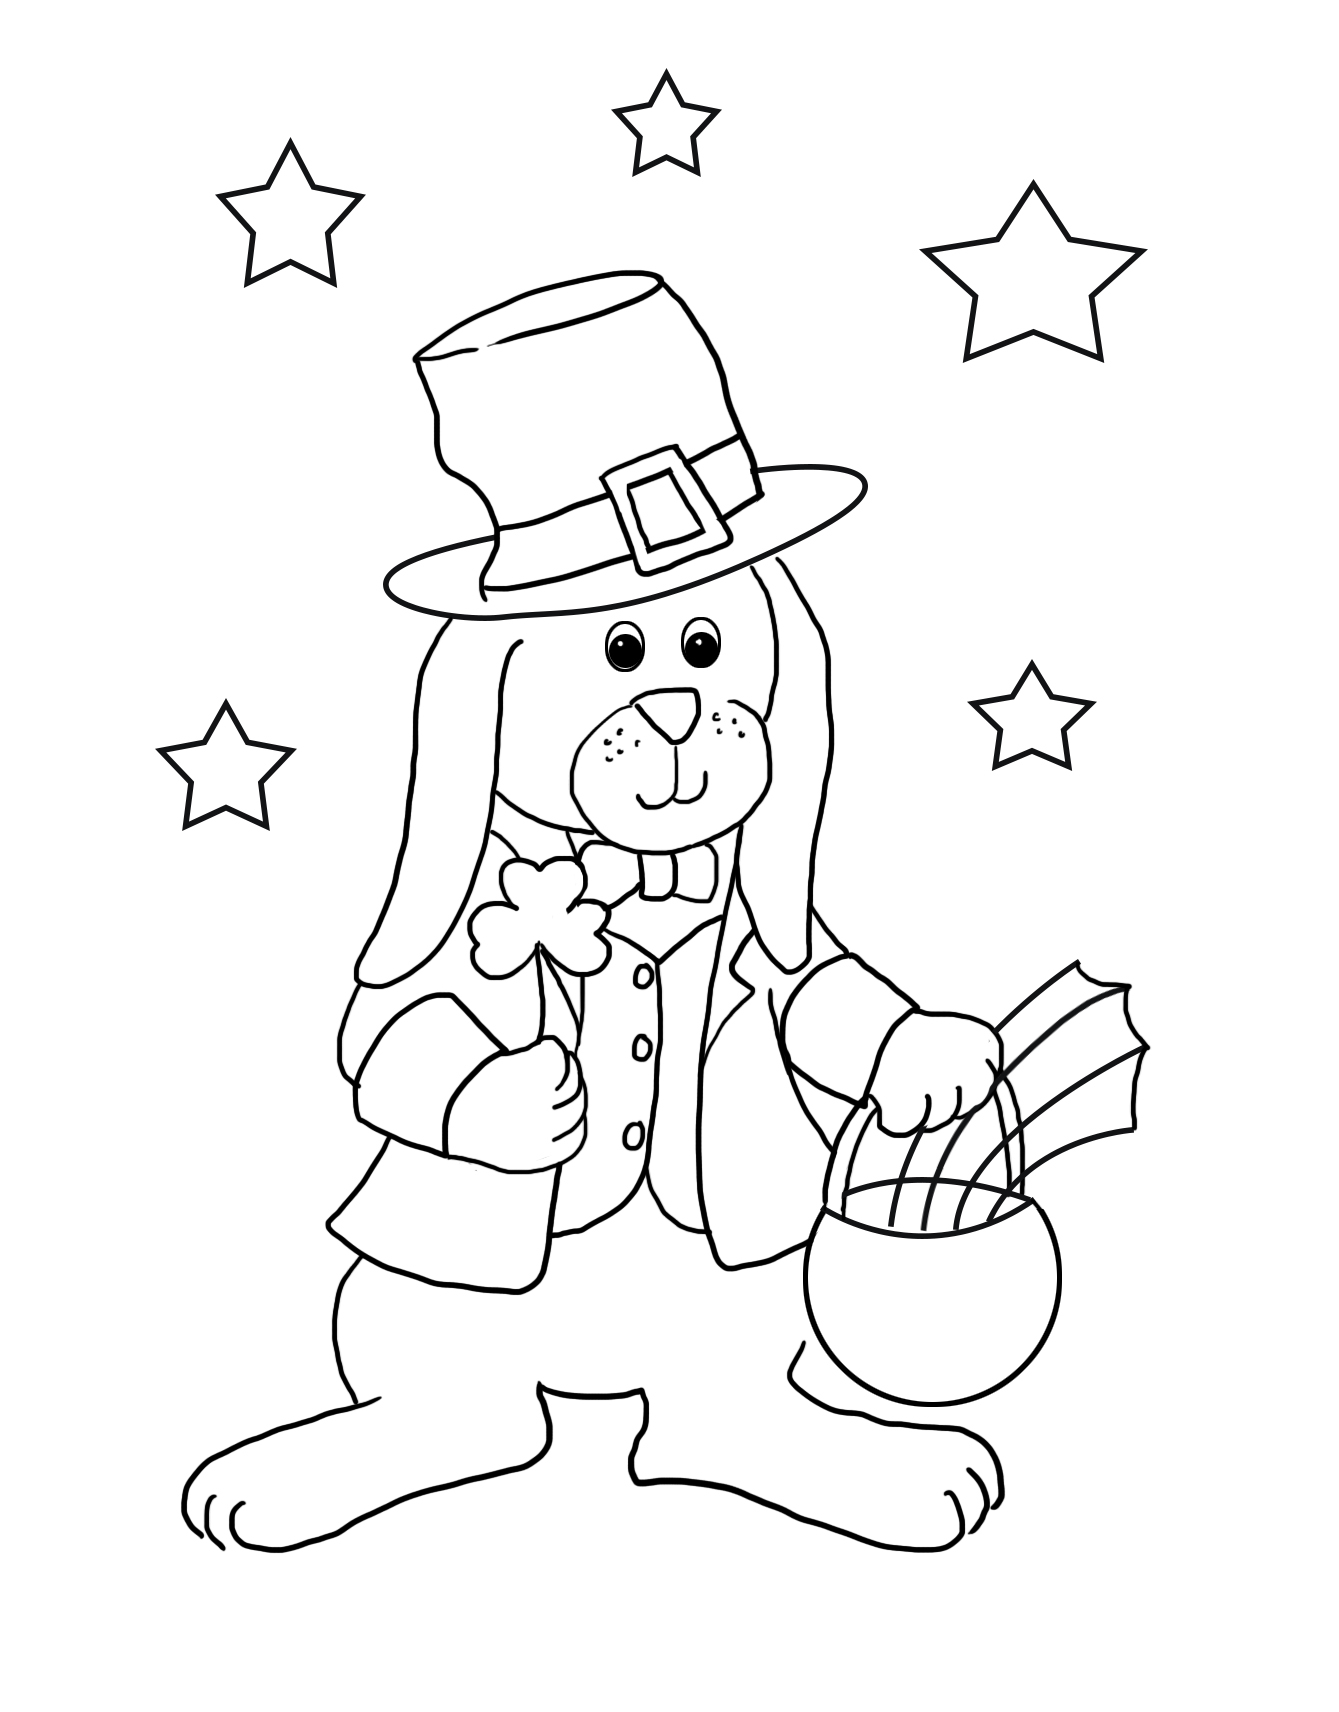 funny bunny for coloring St. Patrick's day